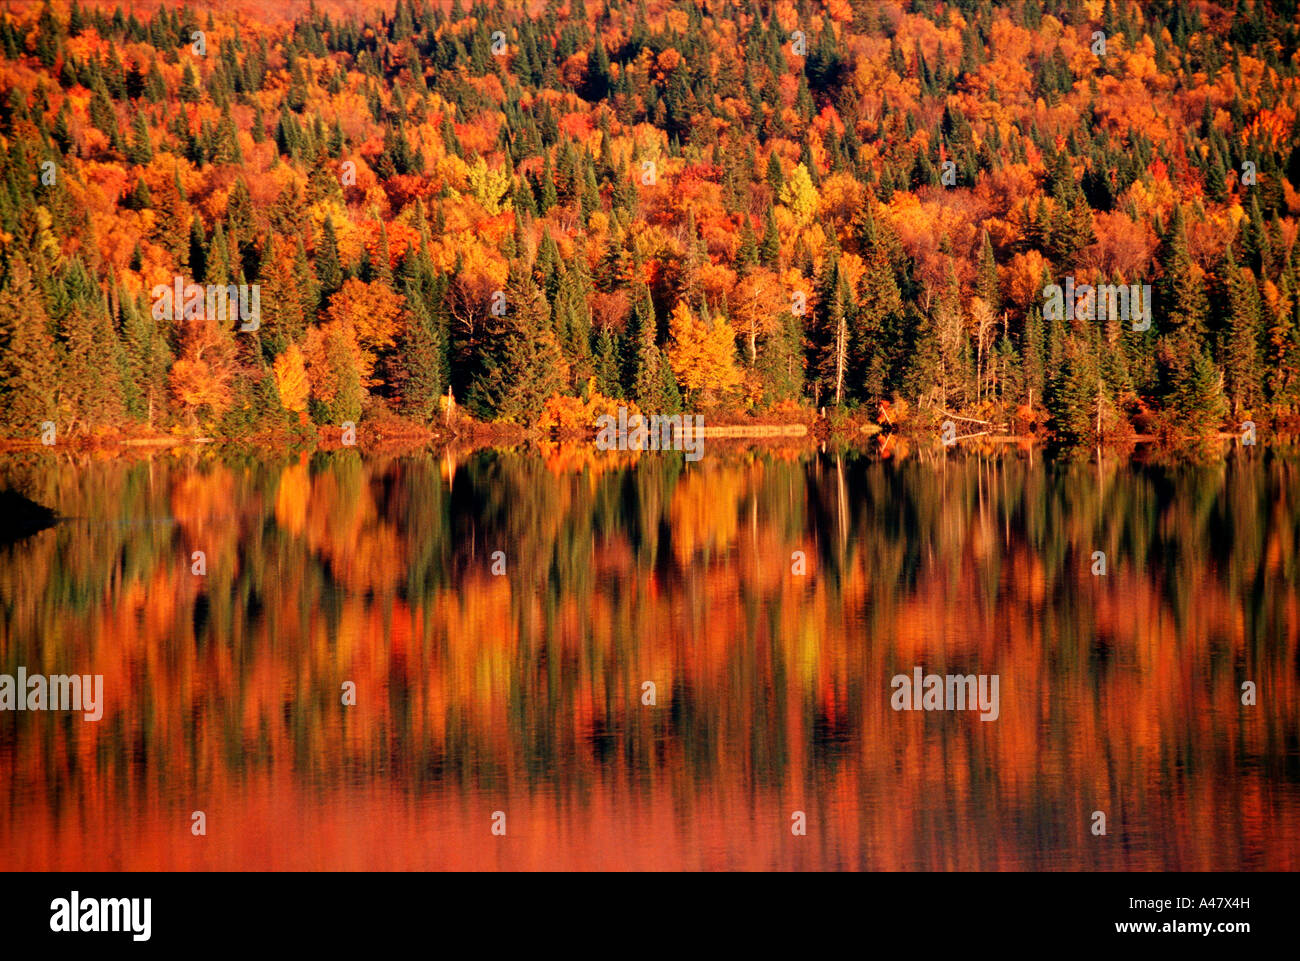 autumn-trees-reflected-in-a-lake-in-quebec-A47X4H.jpg